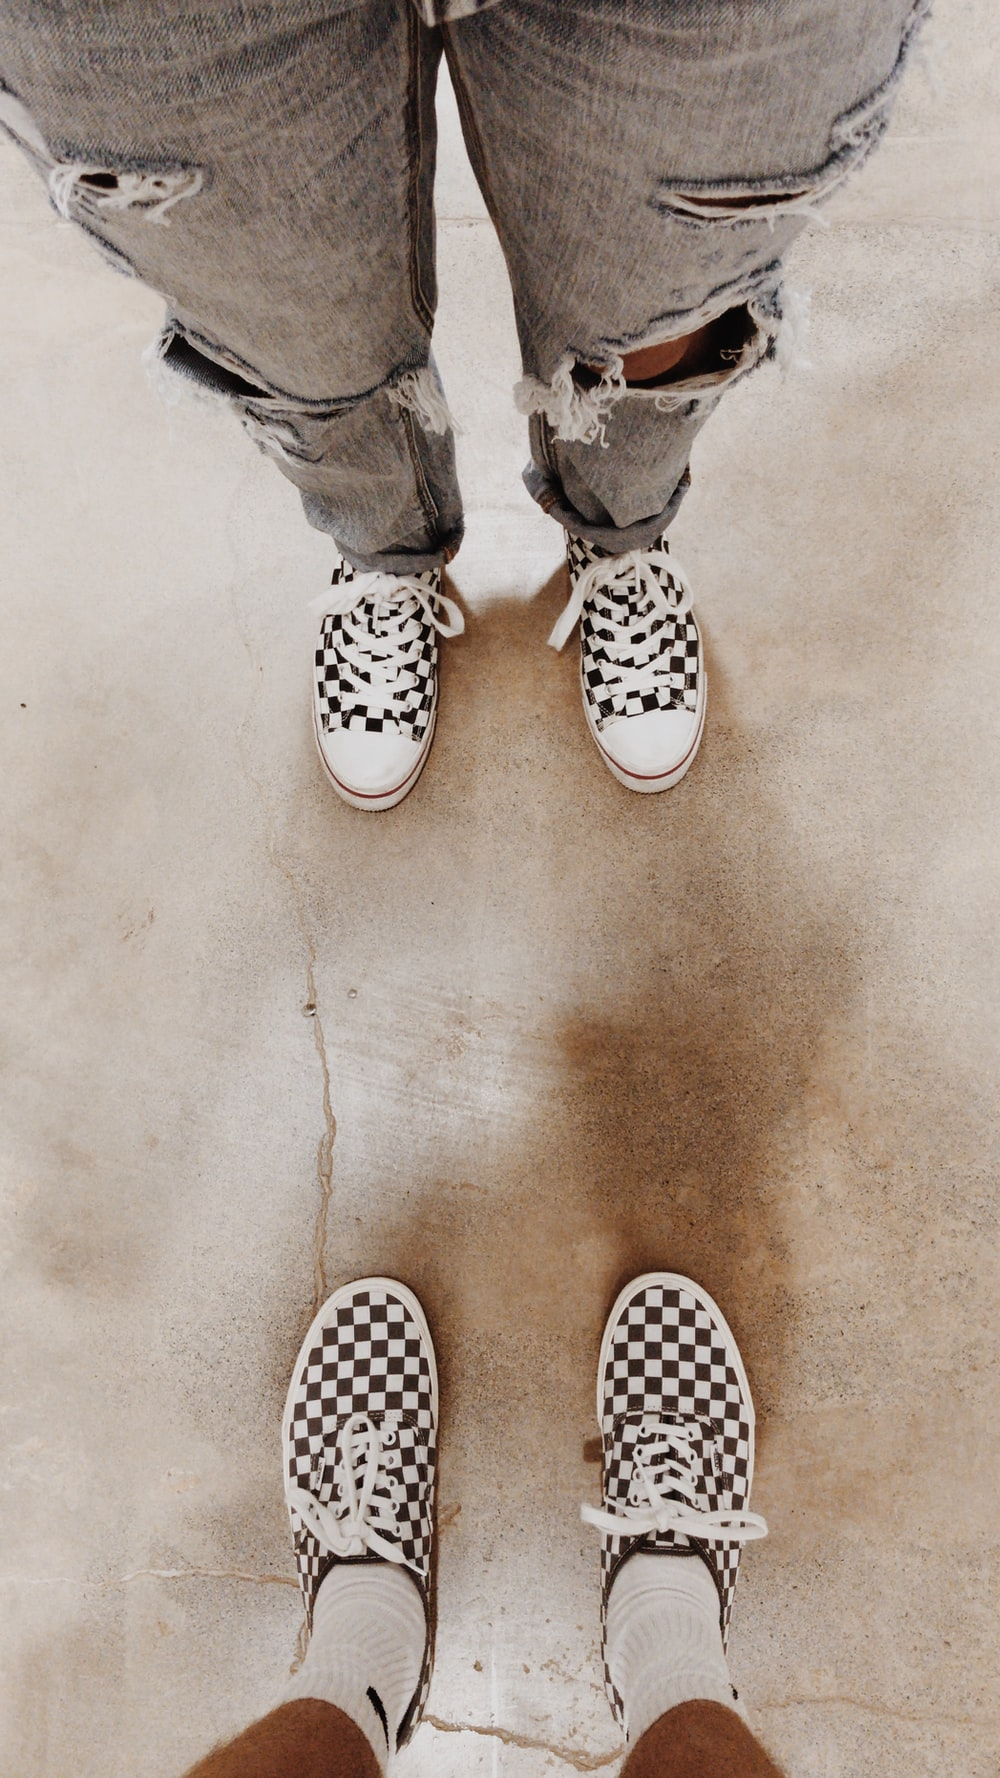 person wearing white and black polka dot sneakers